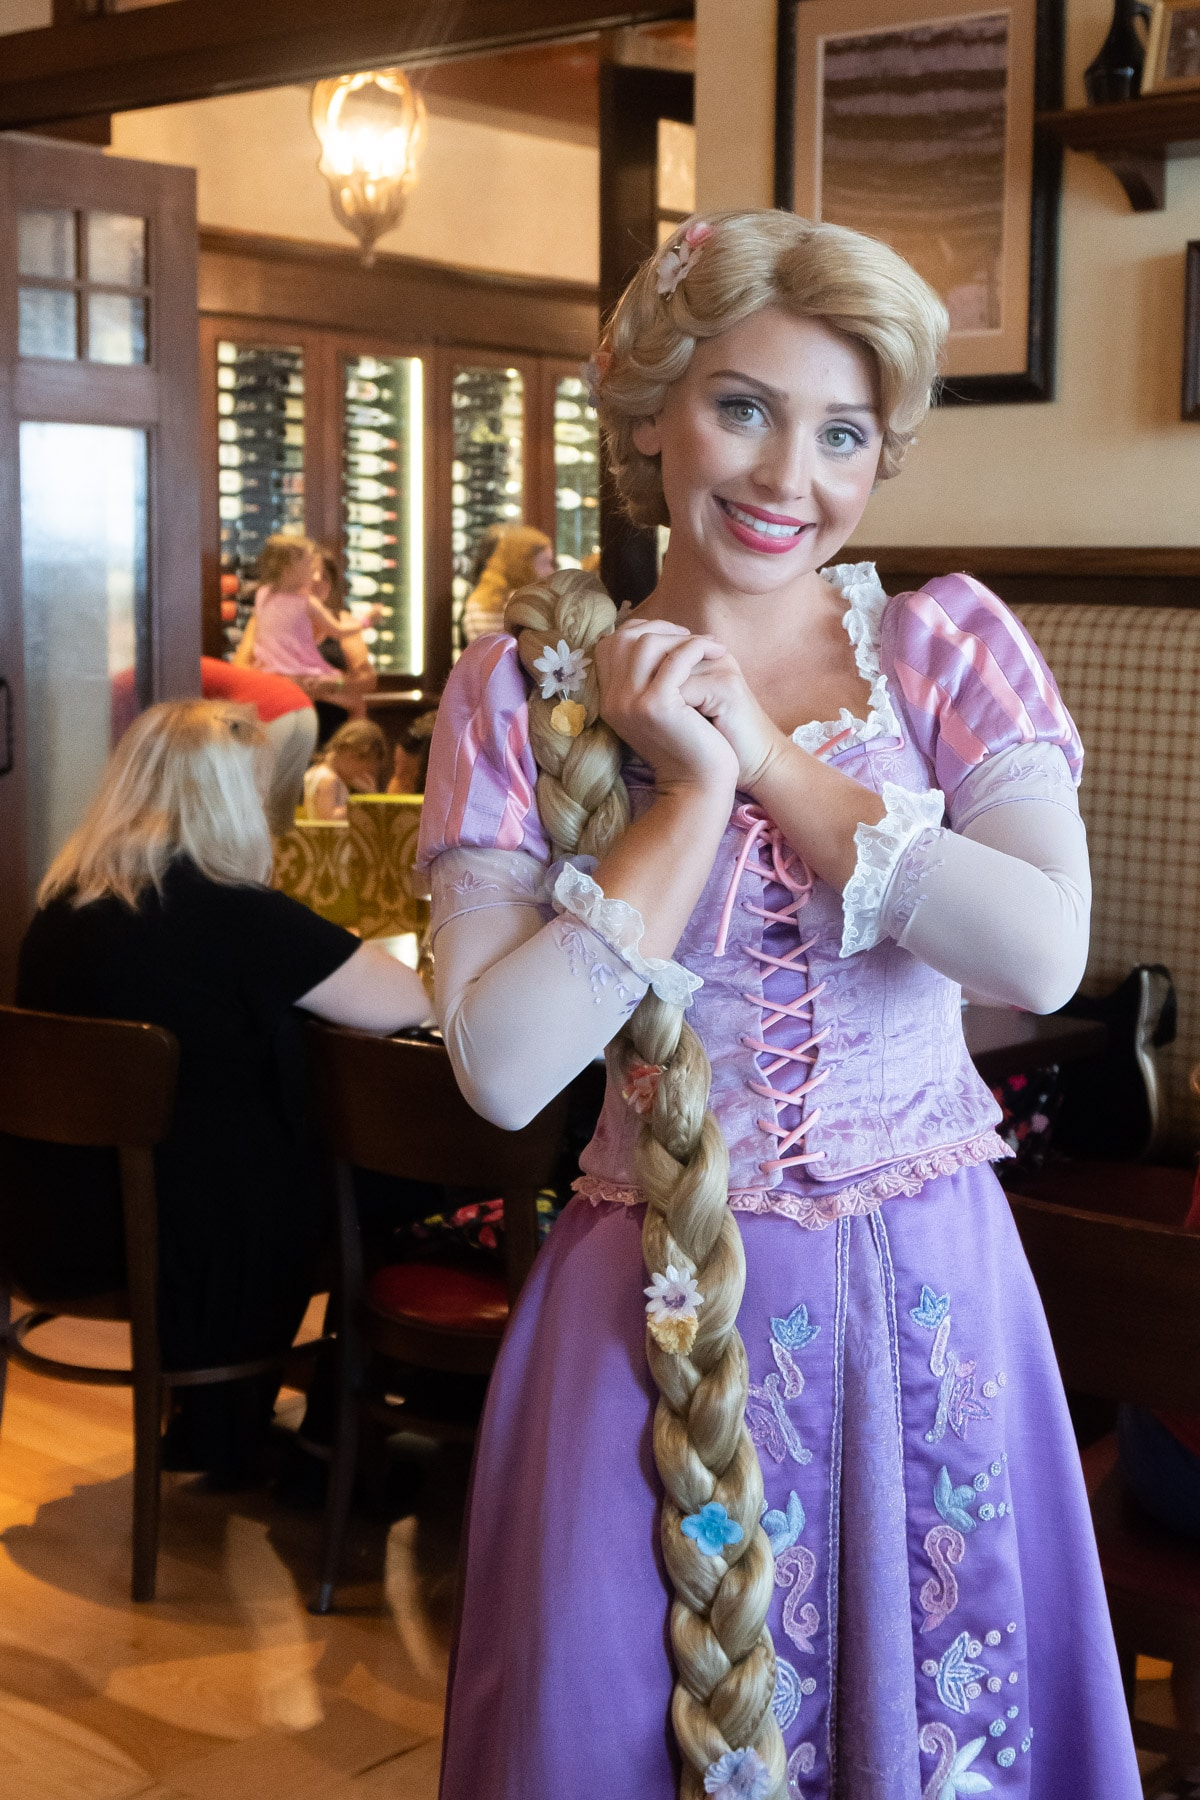 Rapunzel in purple dress at Trattoria al Forno